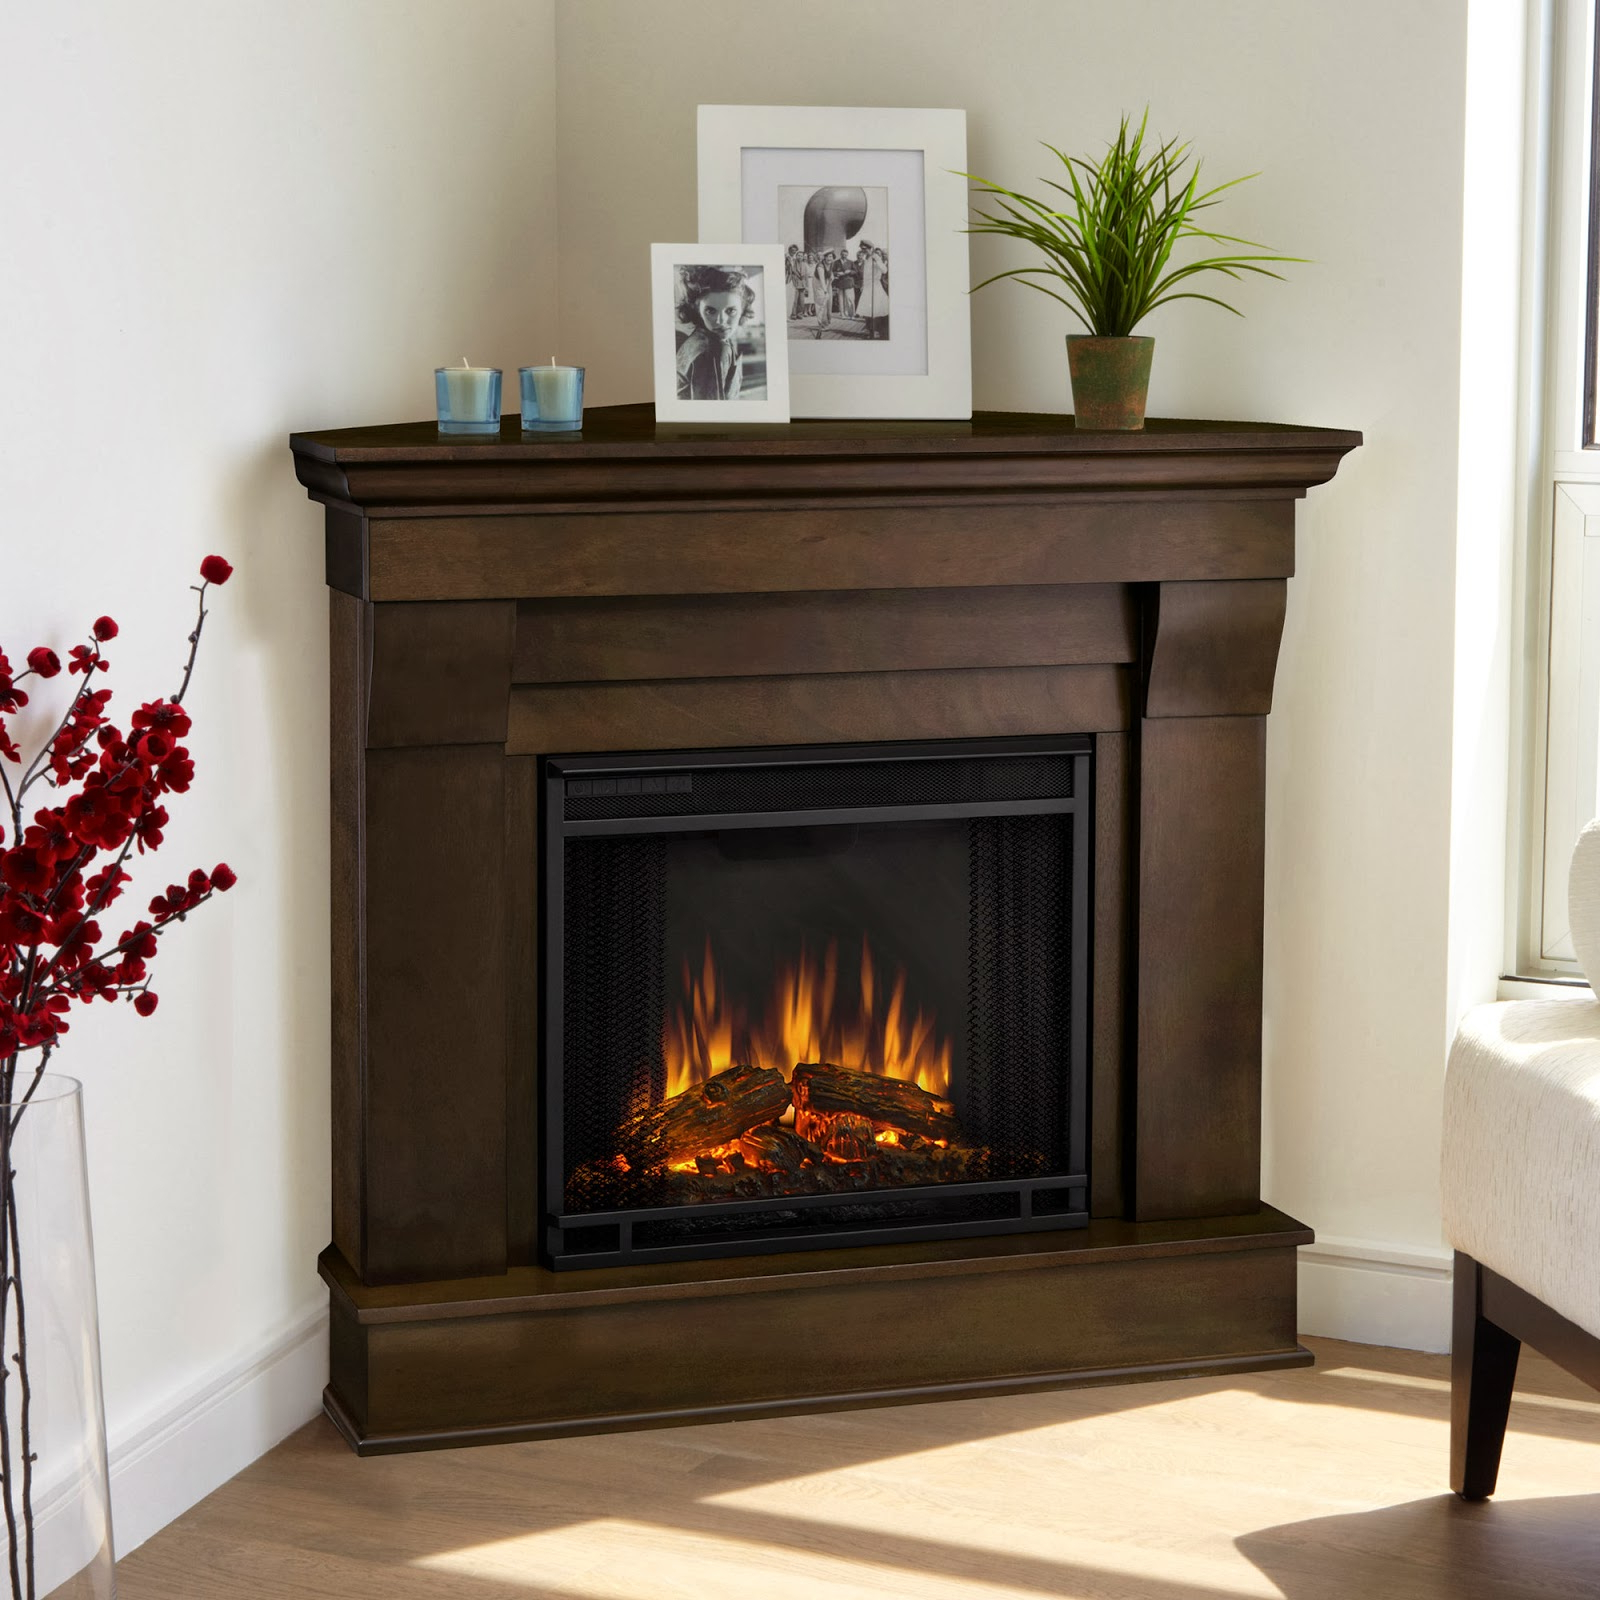 Fulton Wide Tv Stands With Regard To Fashionable Wayfair Electric Fireplace (View 7 of 10)